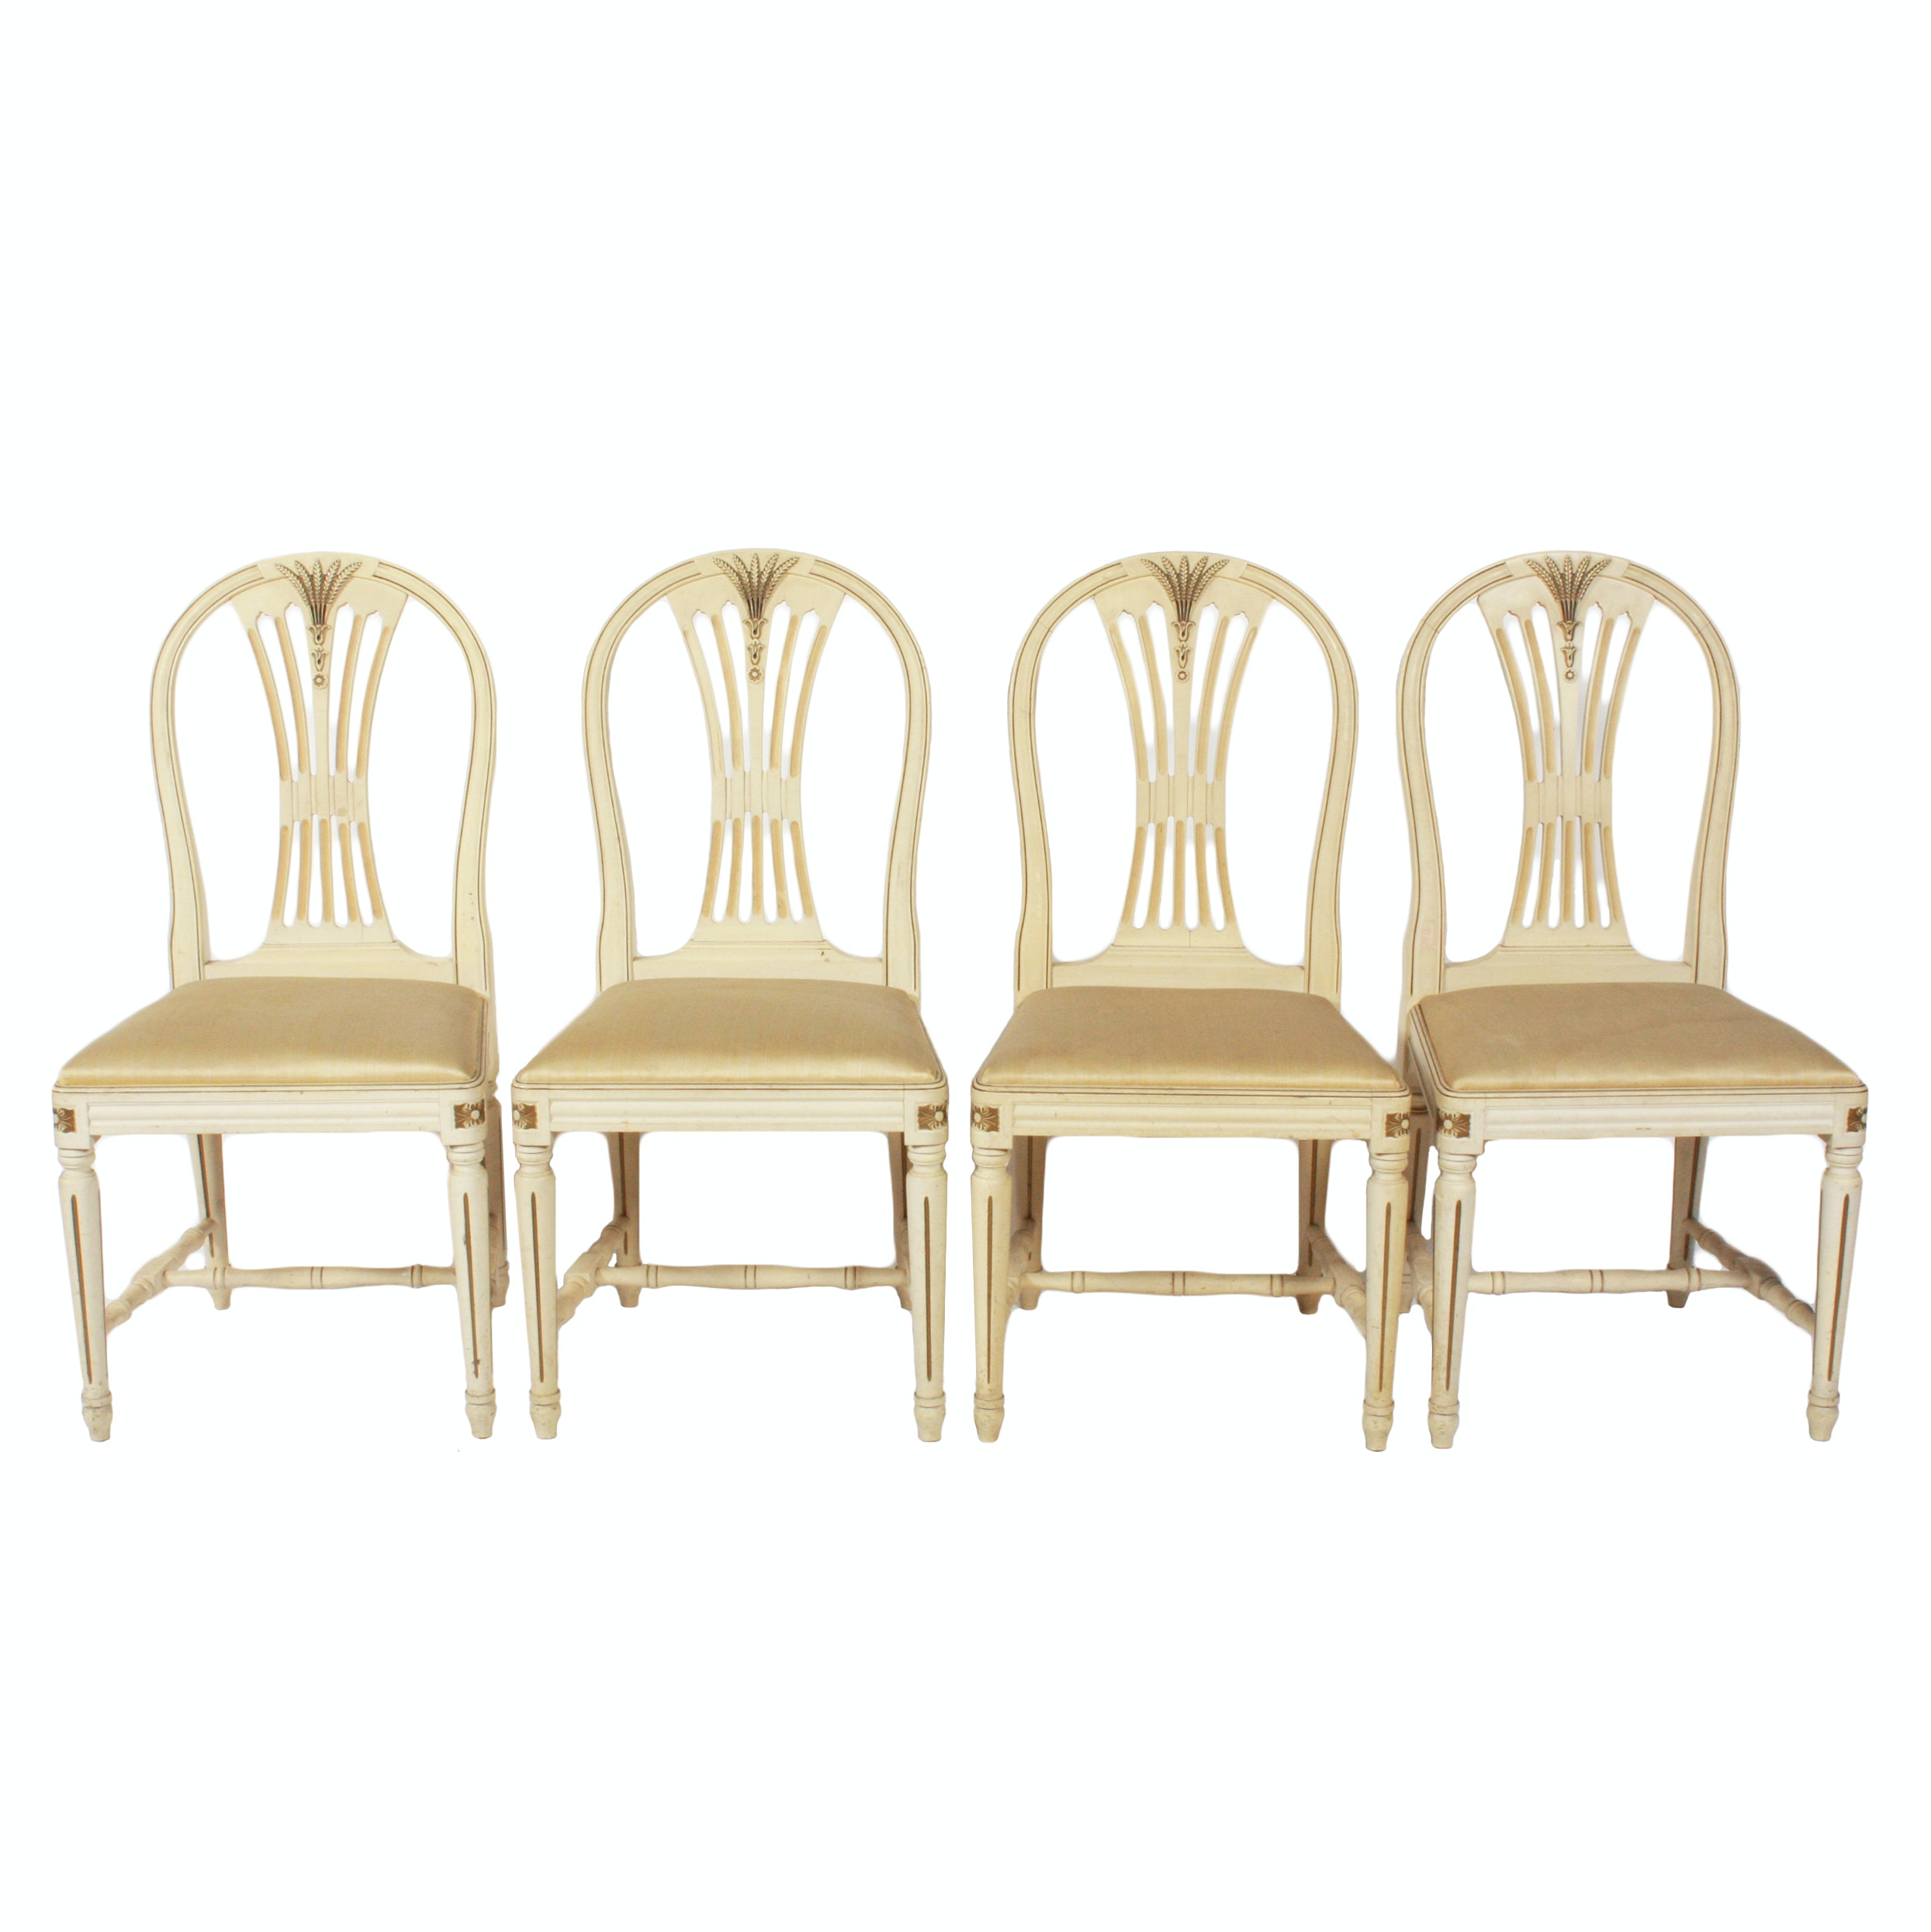 Four Swedish Gustavian Style Side Chairs